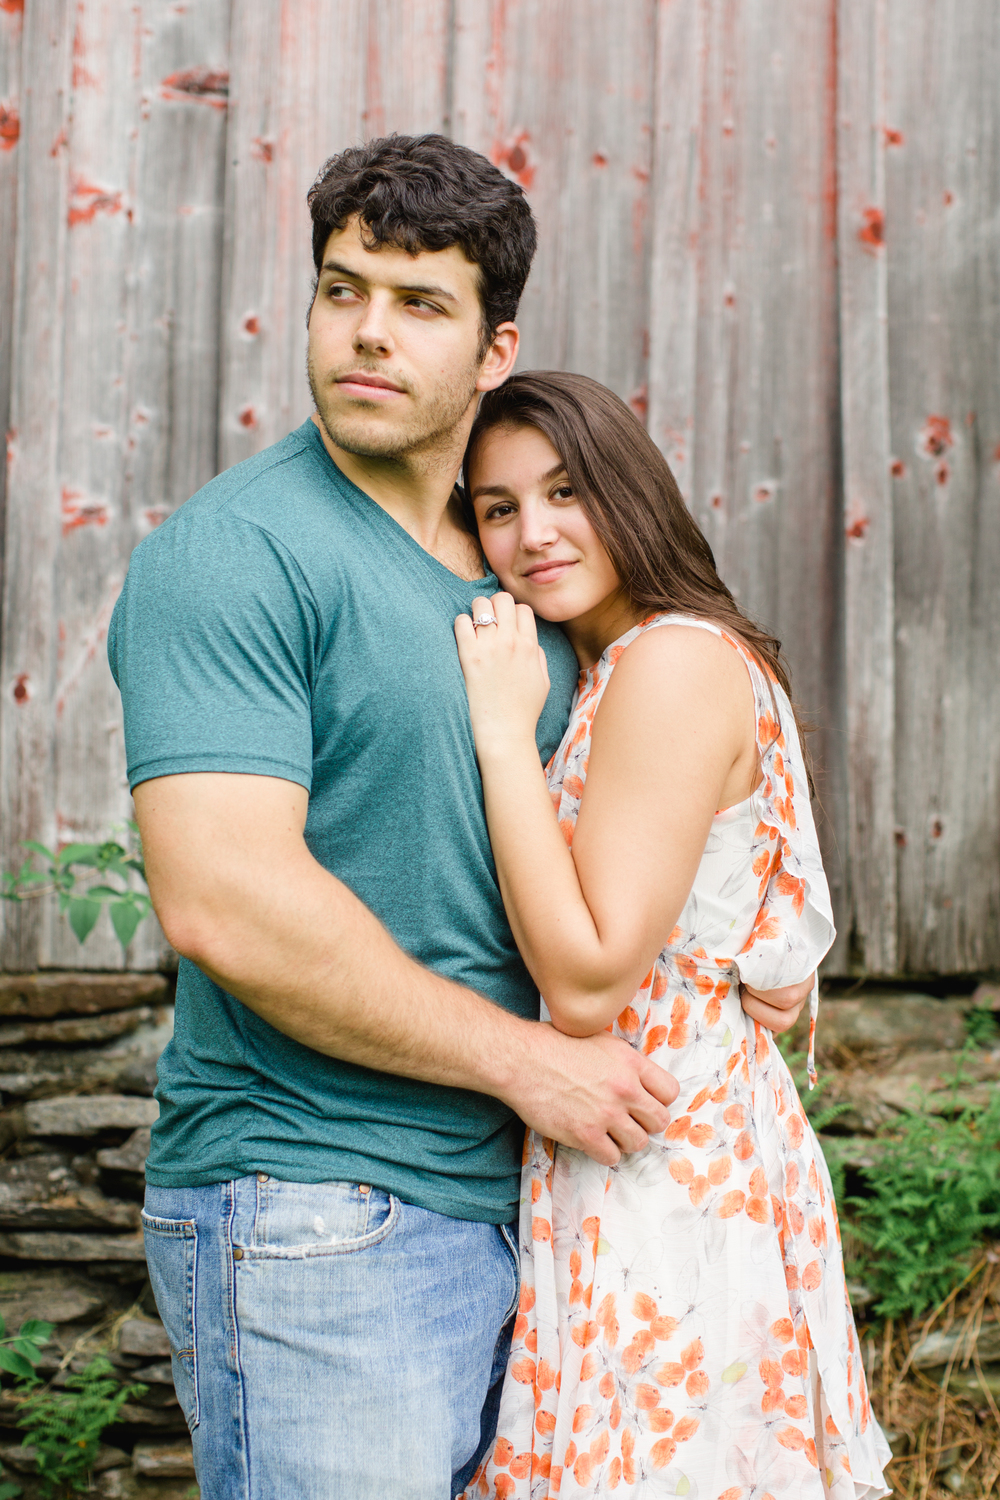 Scranton PA Rustic Romantic Engagement Session Photographers Jordan DeNike_JDP-94.jpg